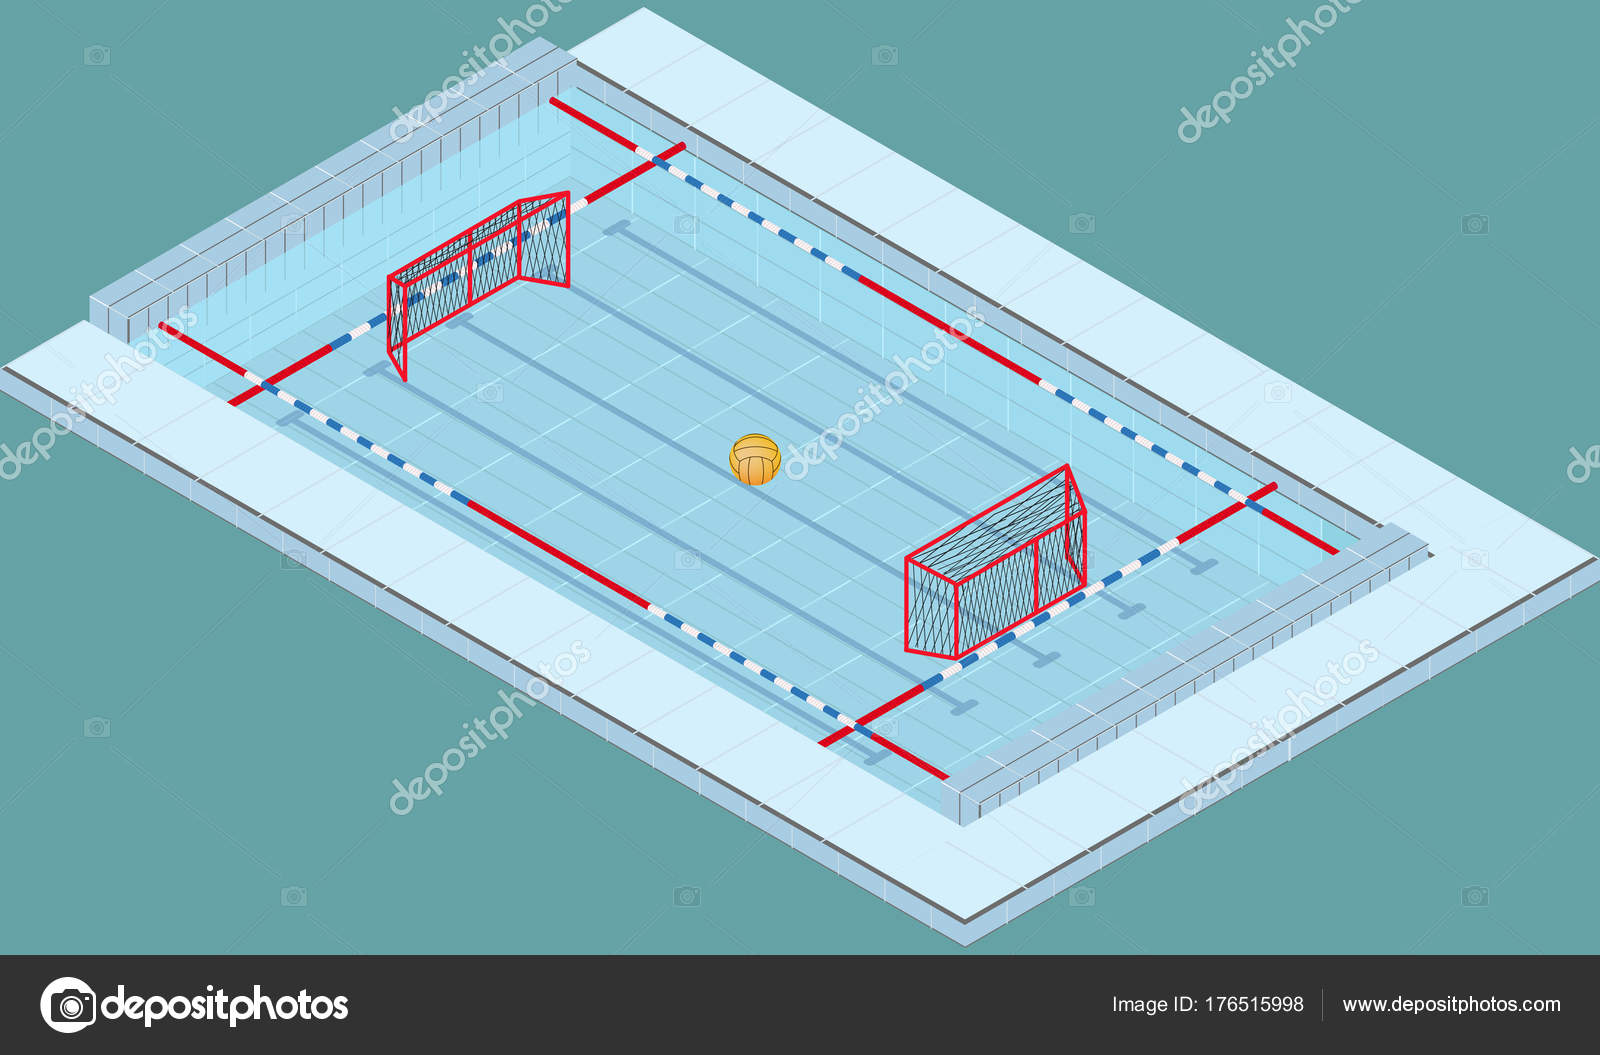 Piscina Waterpolo Isometric Image Of A Pool For Water Polo With Ball And